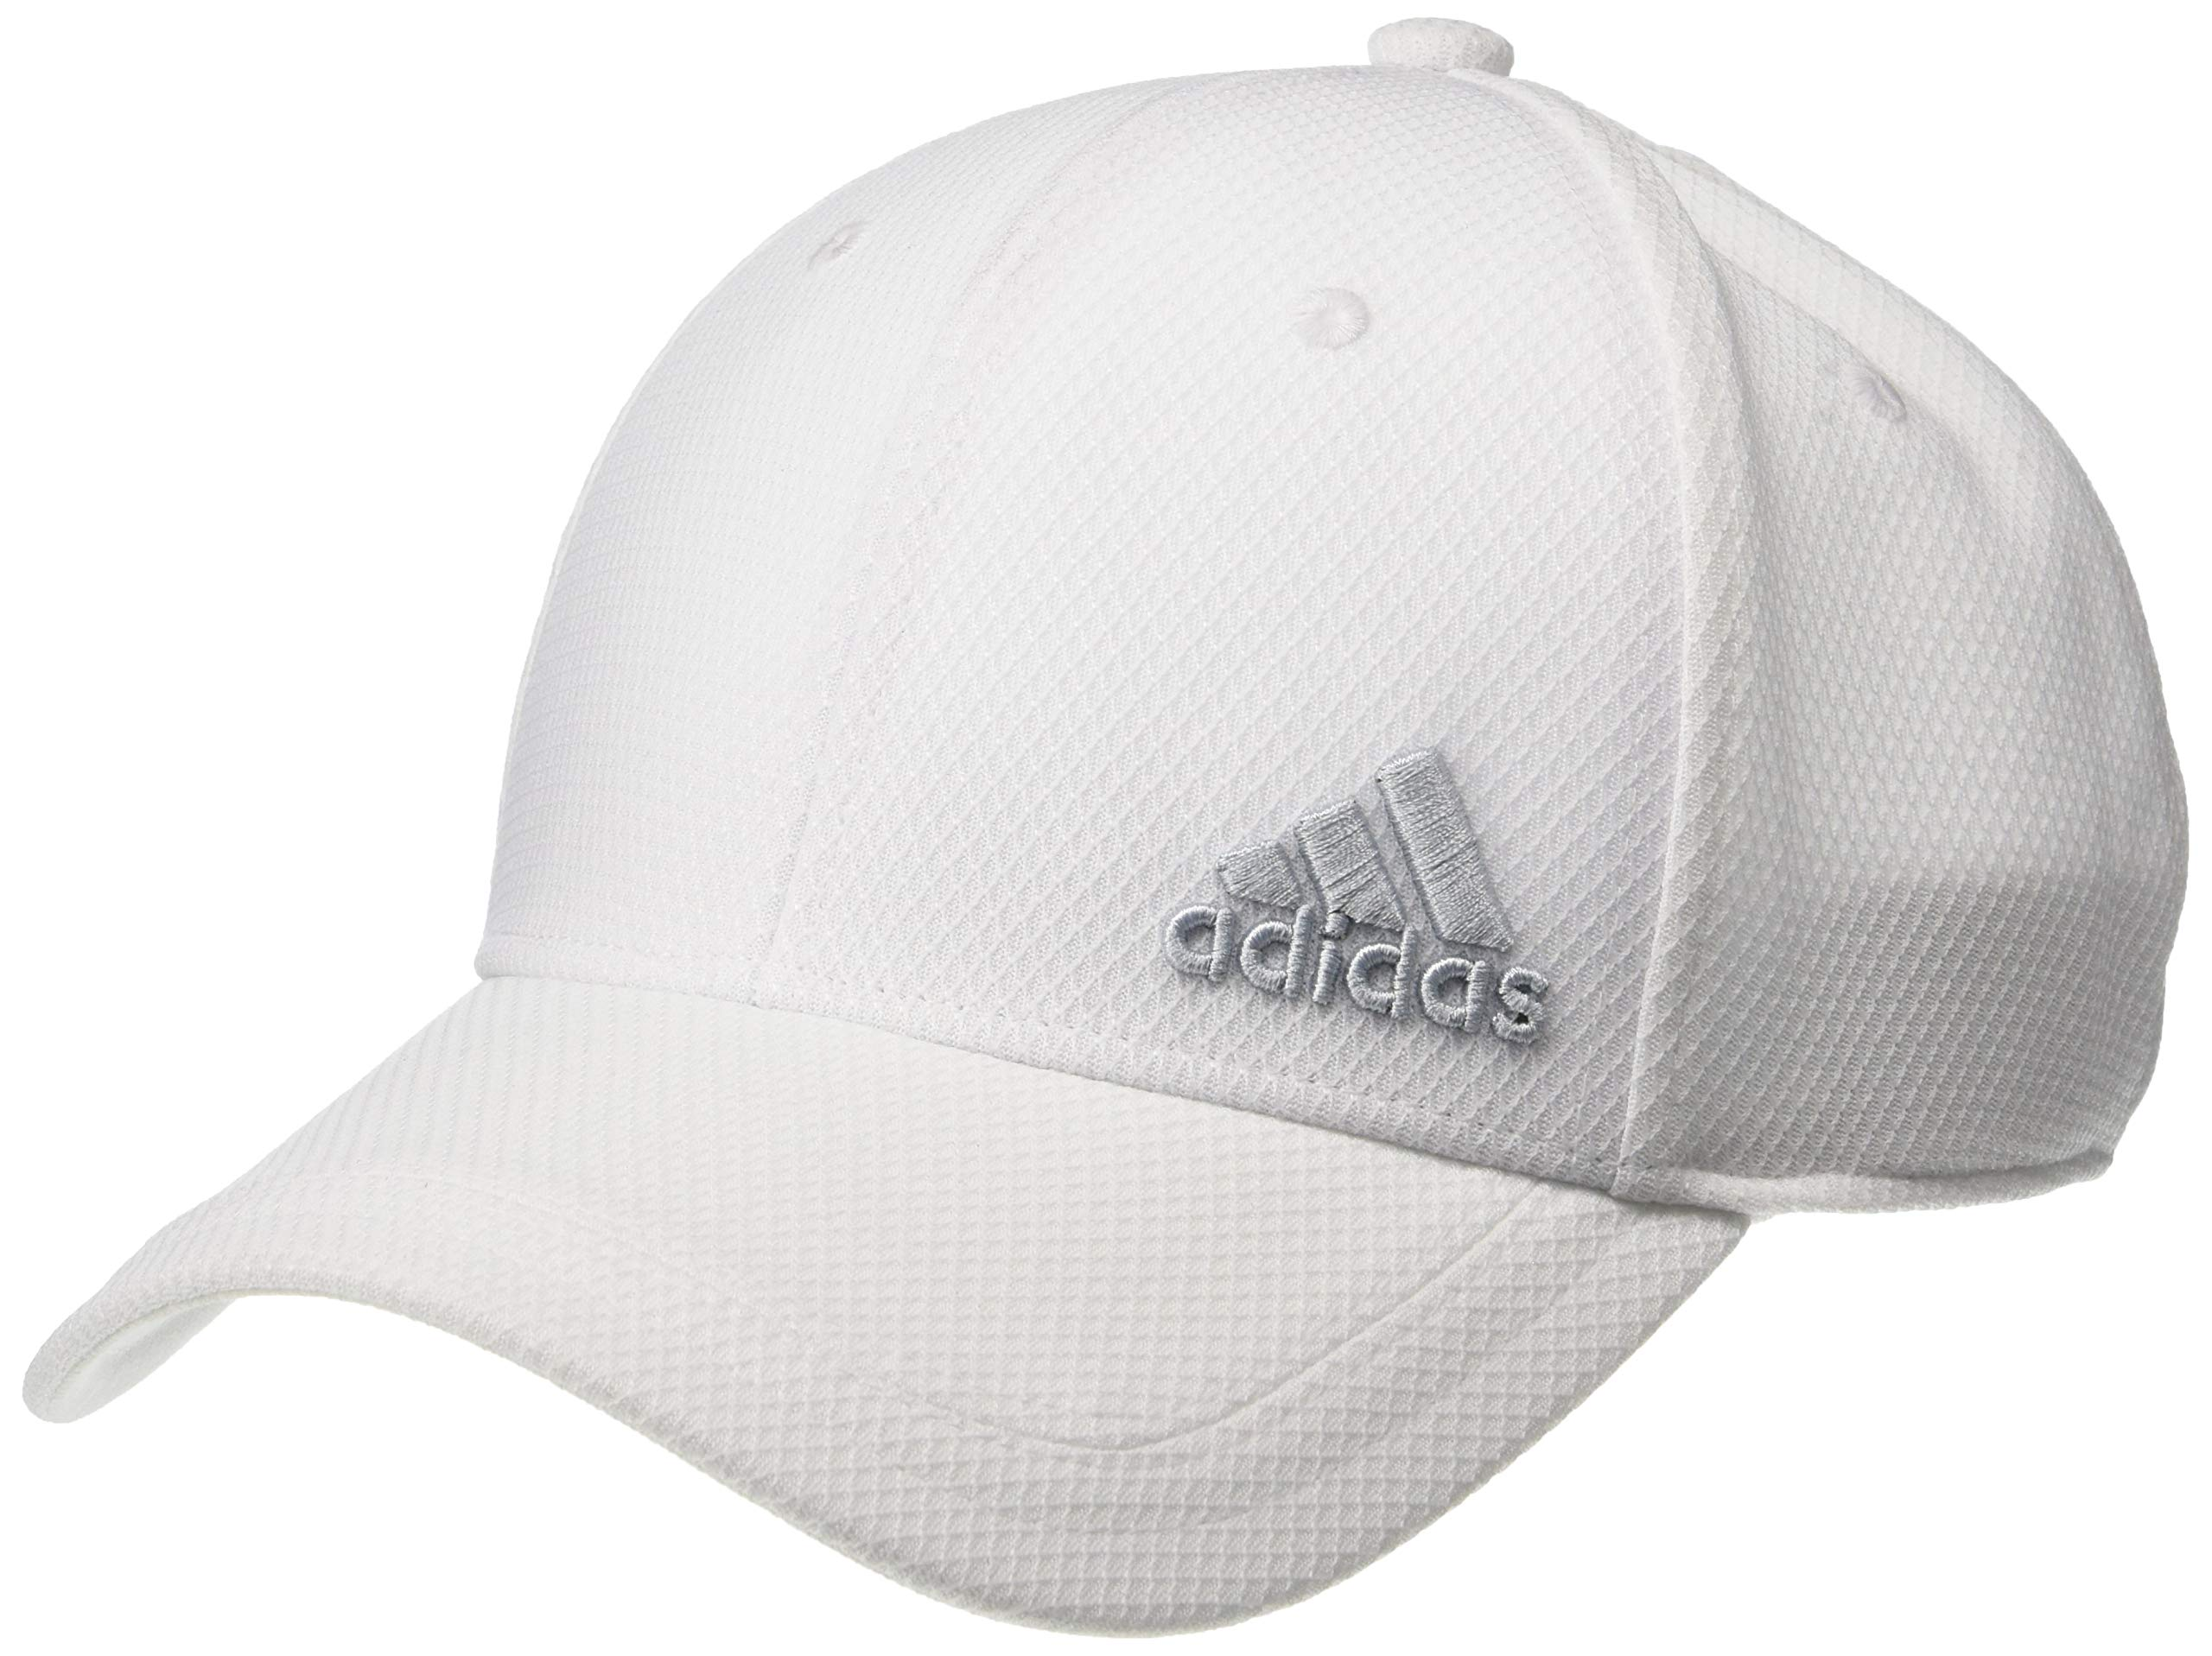 816a539dd adidas Men's Release Stretch Fit Structured Cap, White/Clear Grey,  Large/X-Large